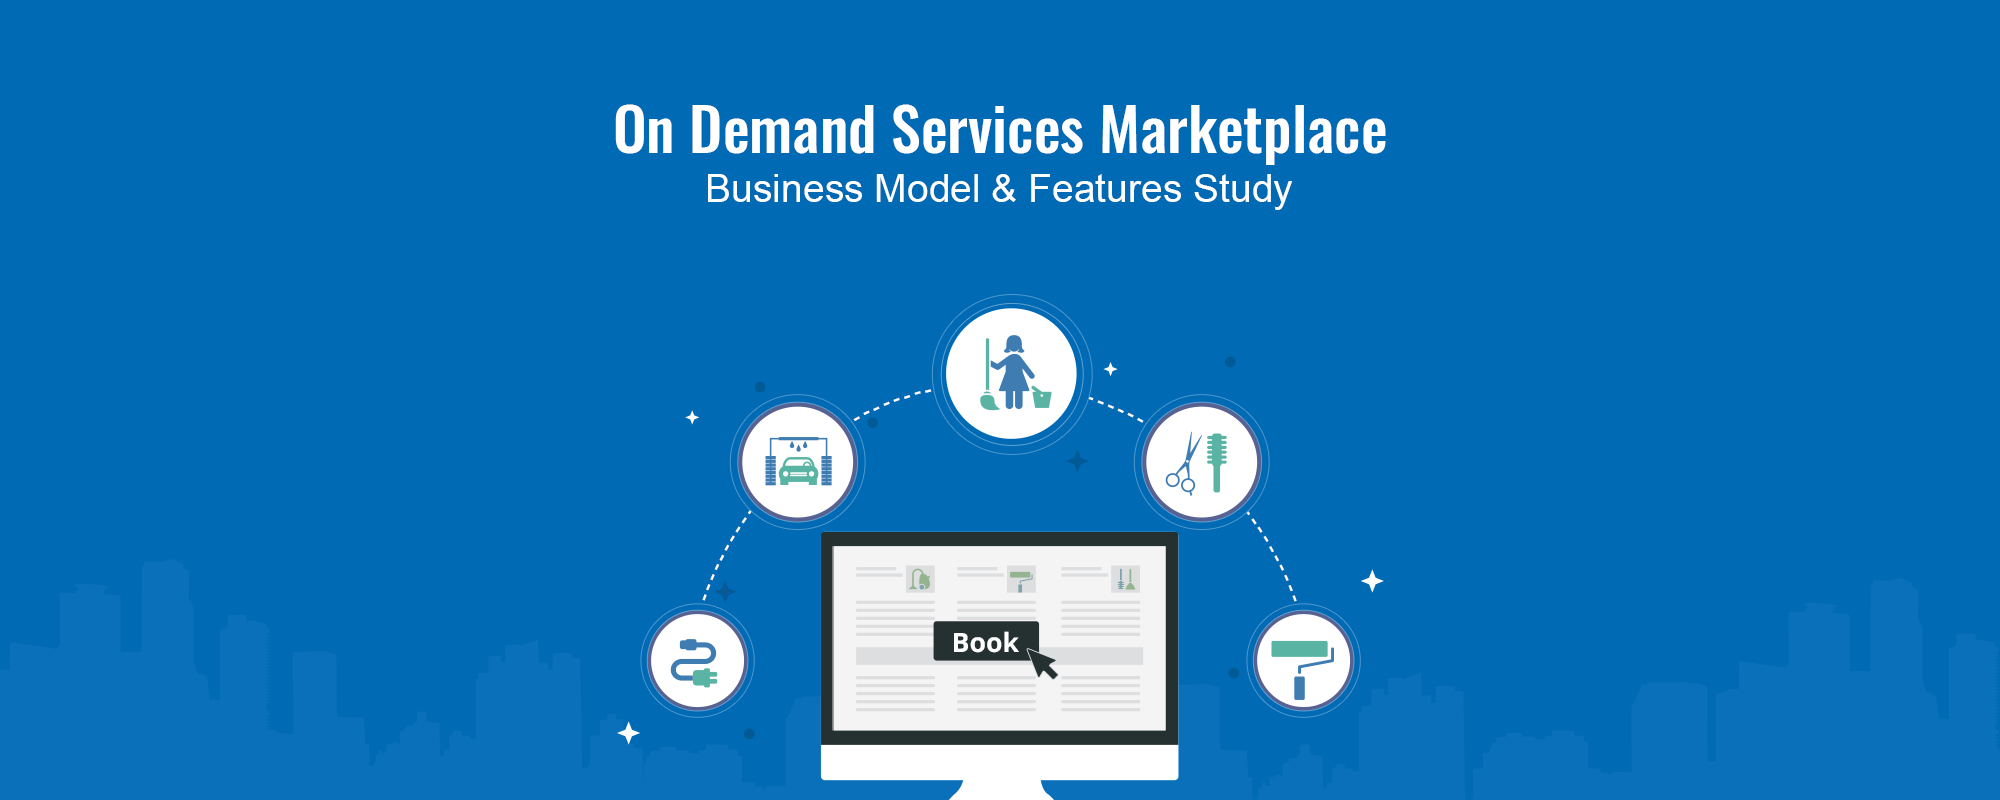 Business Model and Guide to Build On-Demand Service Marketplace